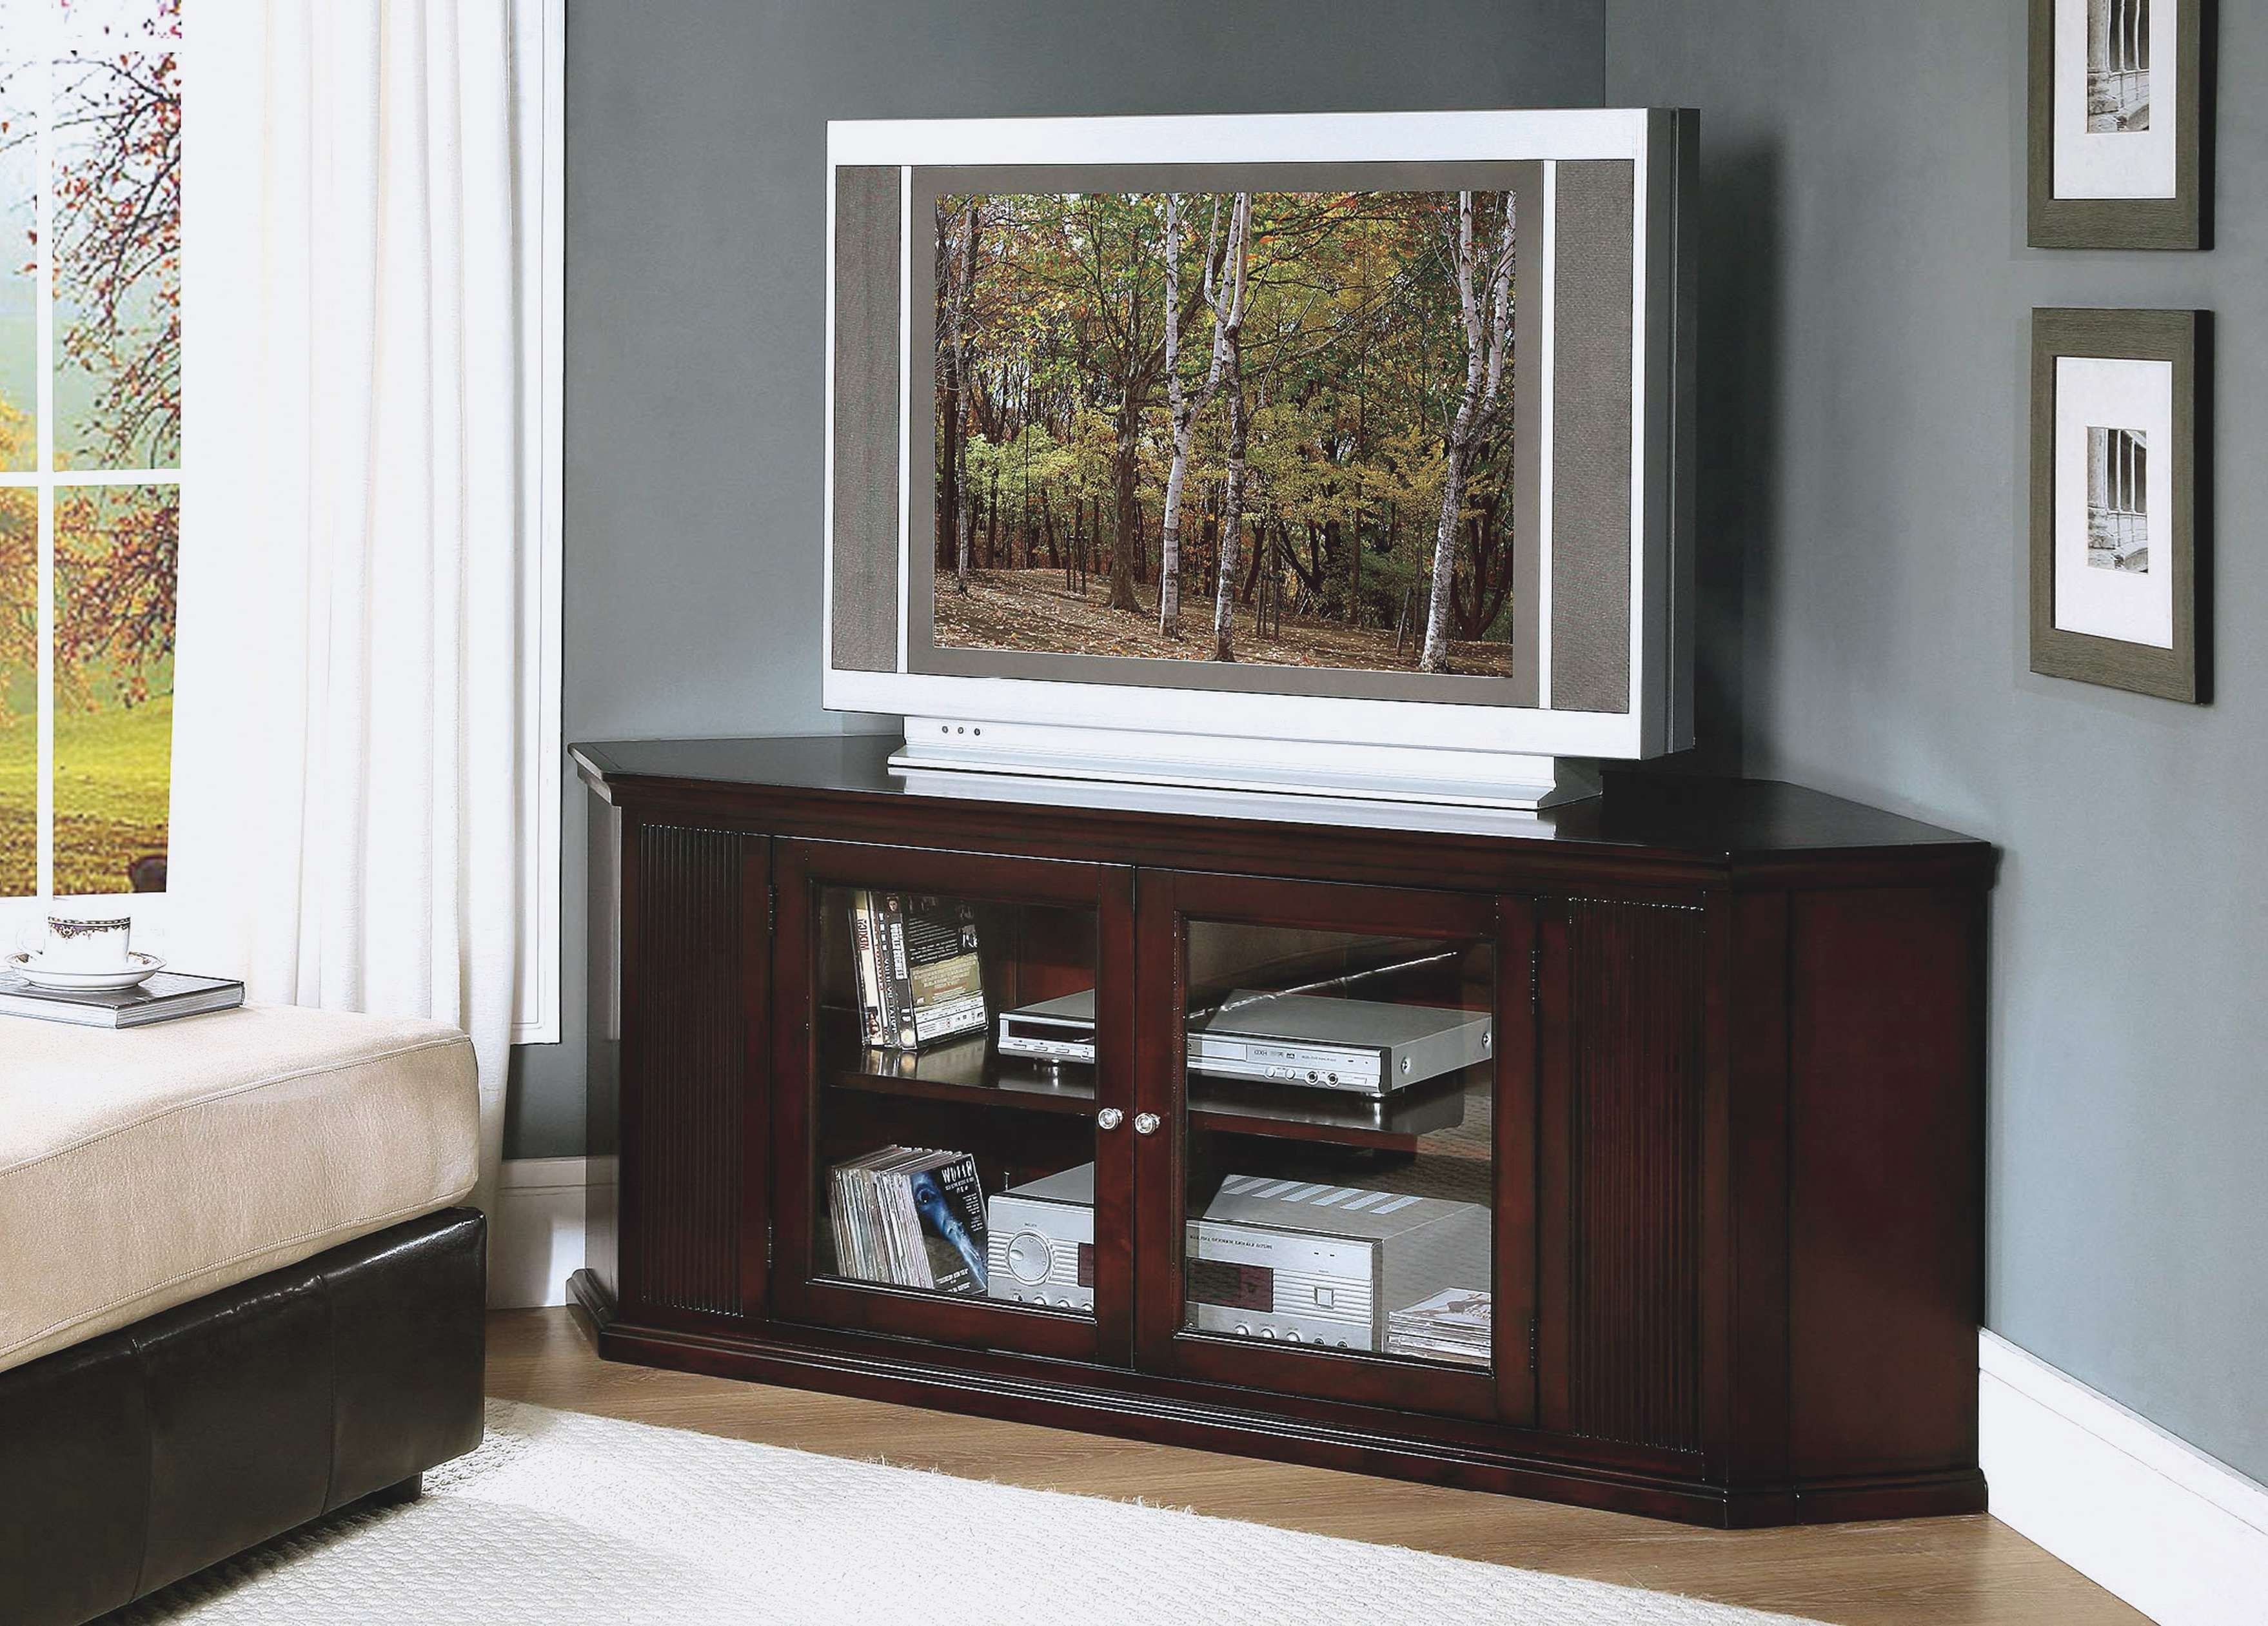 Dark Brown Oak Wood Corner Tv Stand With Glass Doors Of Dazzling Regarding Large Corner Tv Cabinets (View 10 of 20)